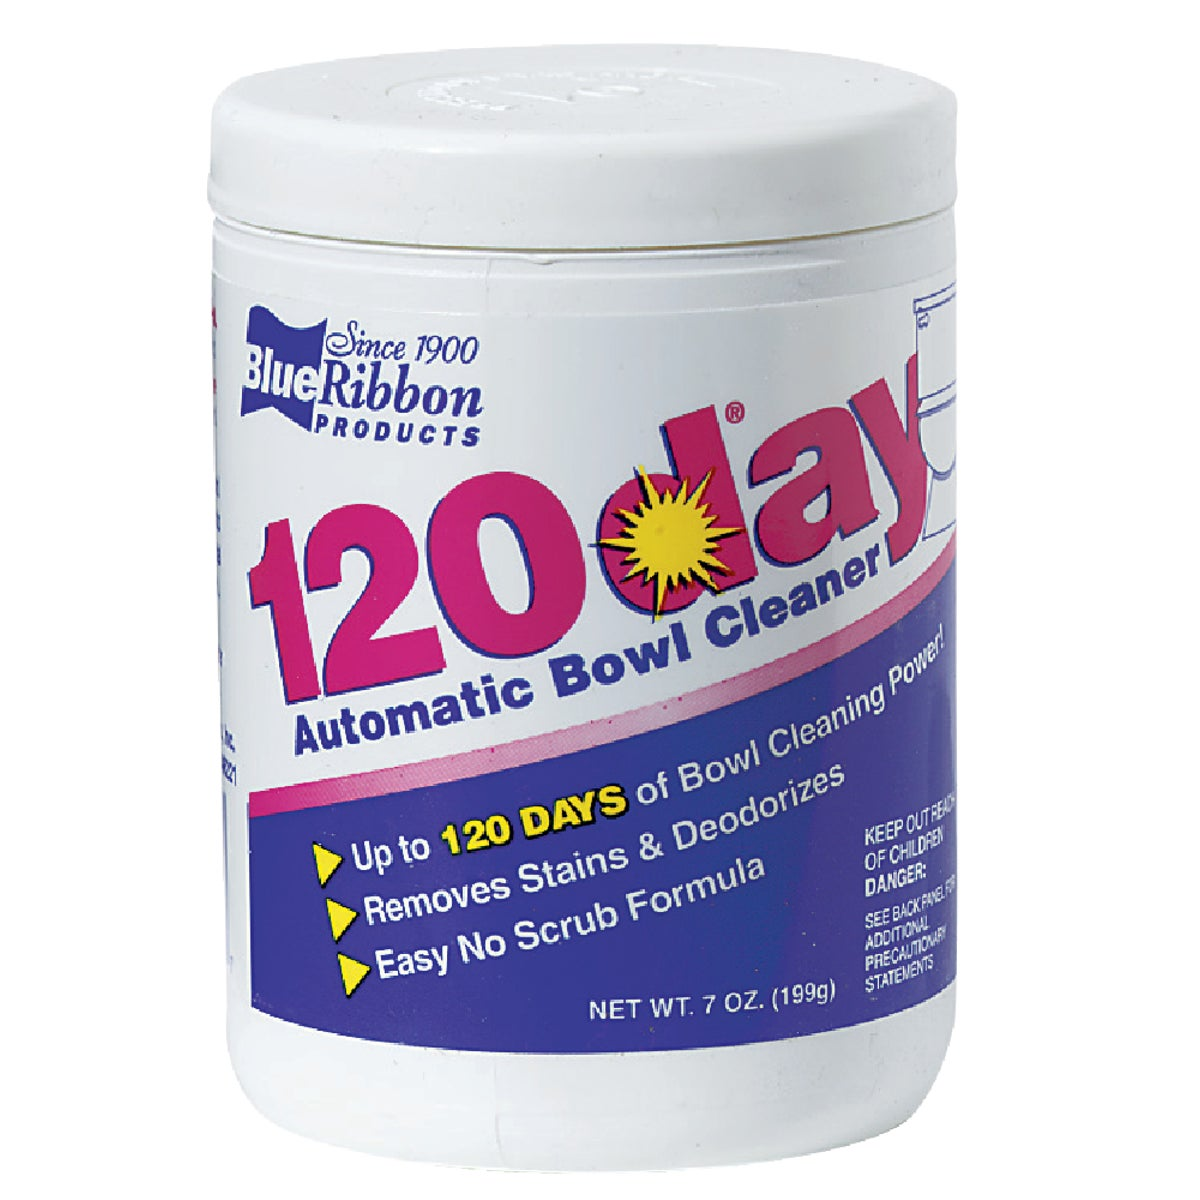 120DAY 7OZ BOWL CLEANER - 03001 by Blue Ribbon Prods